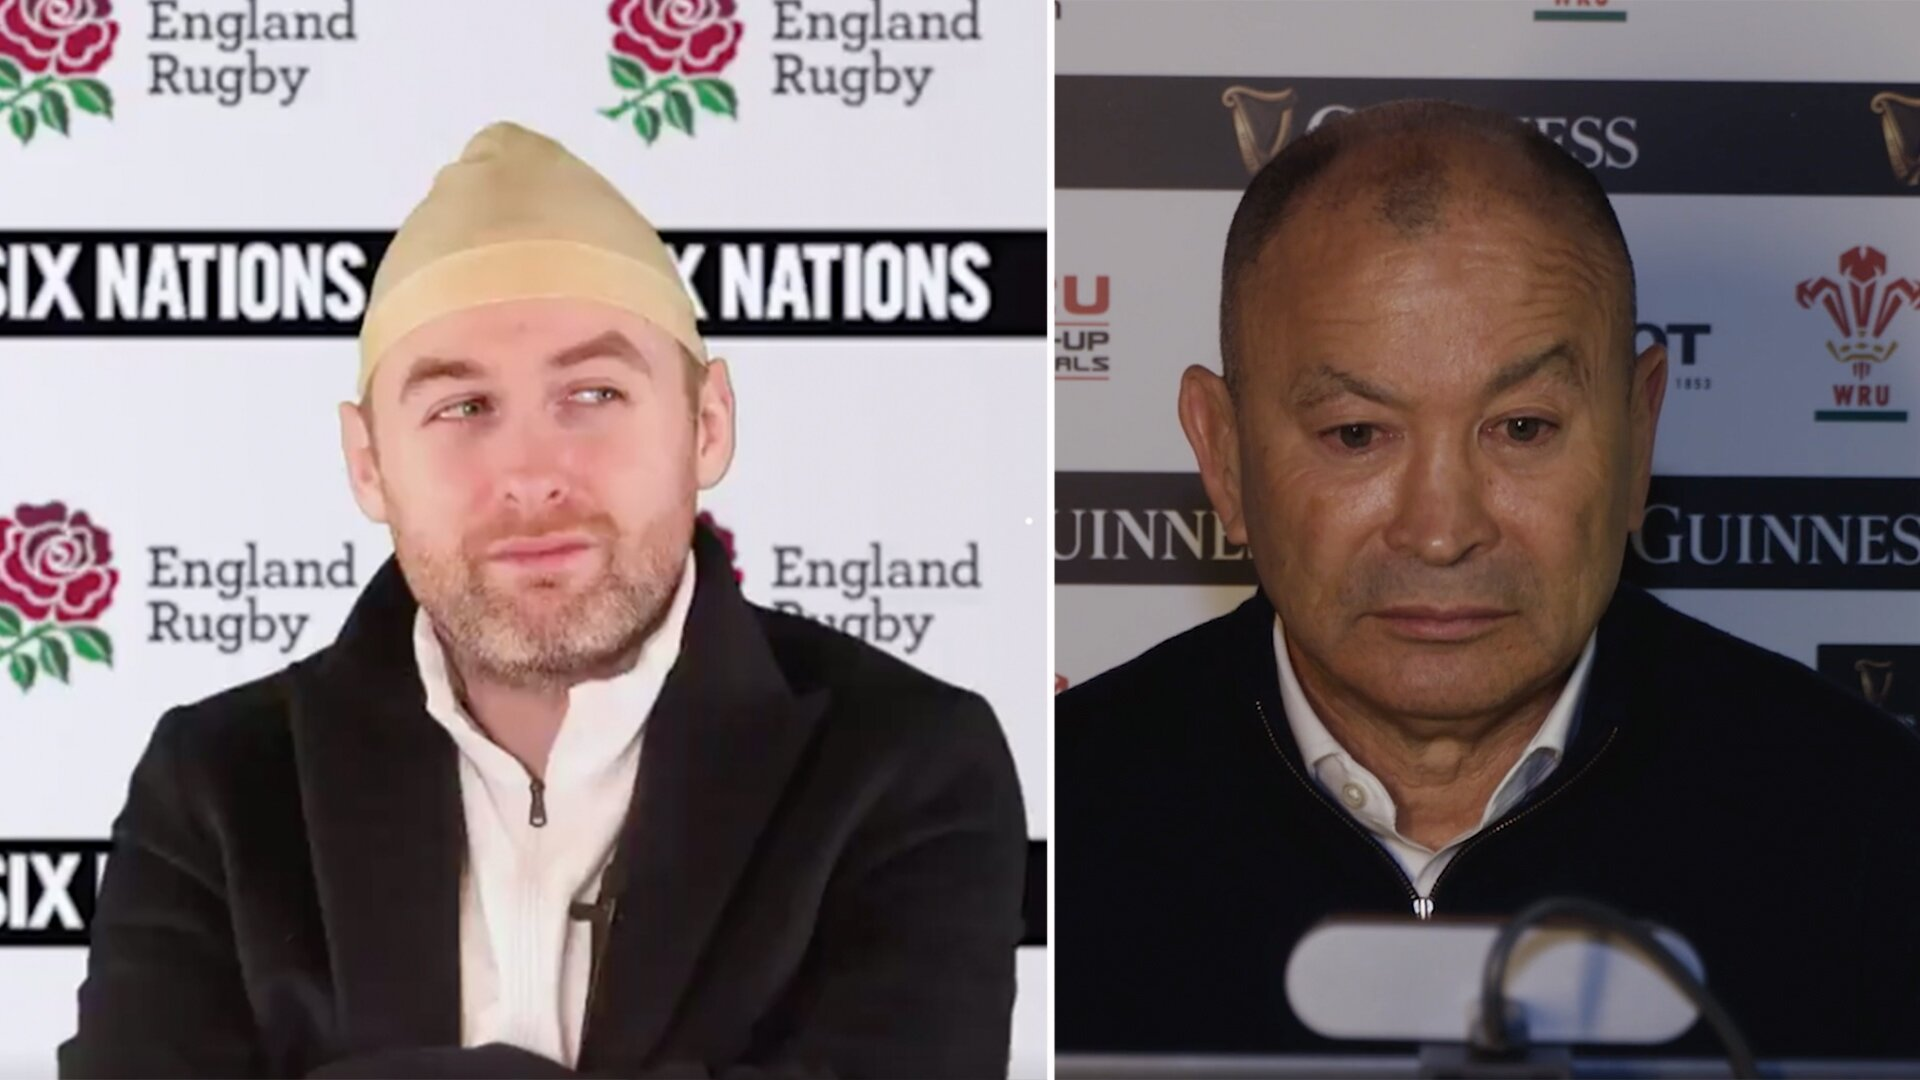 An Irish comedian is going super viral with his impression of England rugby coach Eddie Jones